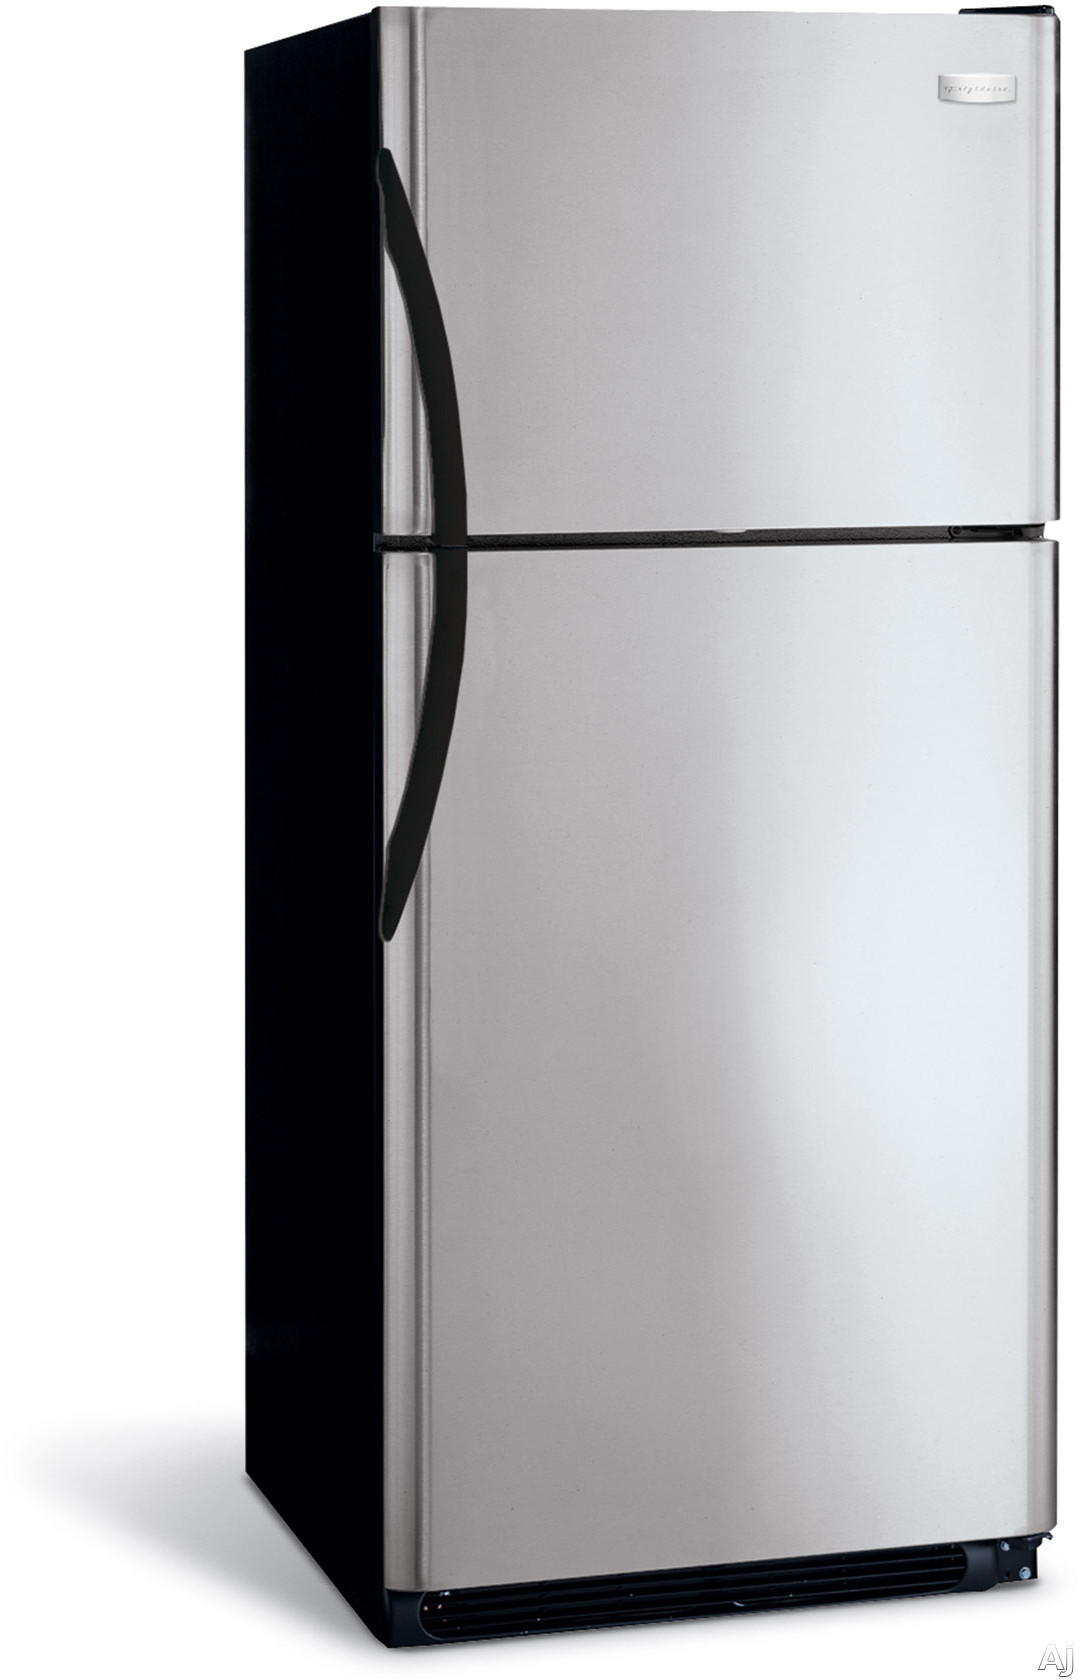 Frigidaire FRT18S6JS 18.2 cu. ft. Top-Freezer Refrigerator with 2 Sliding SpillSafe Glass